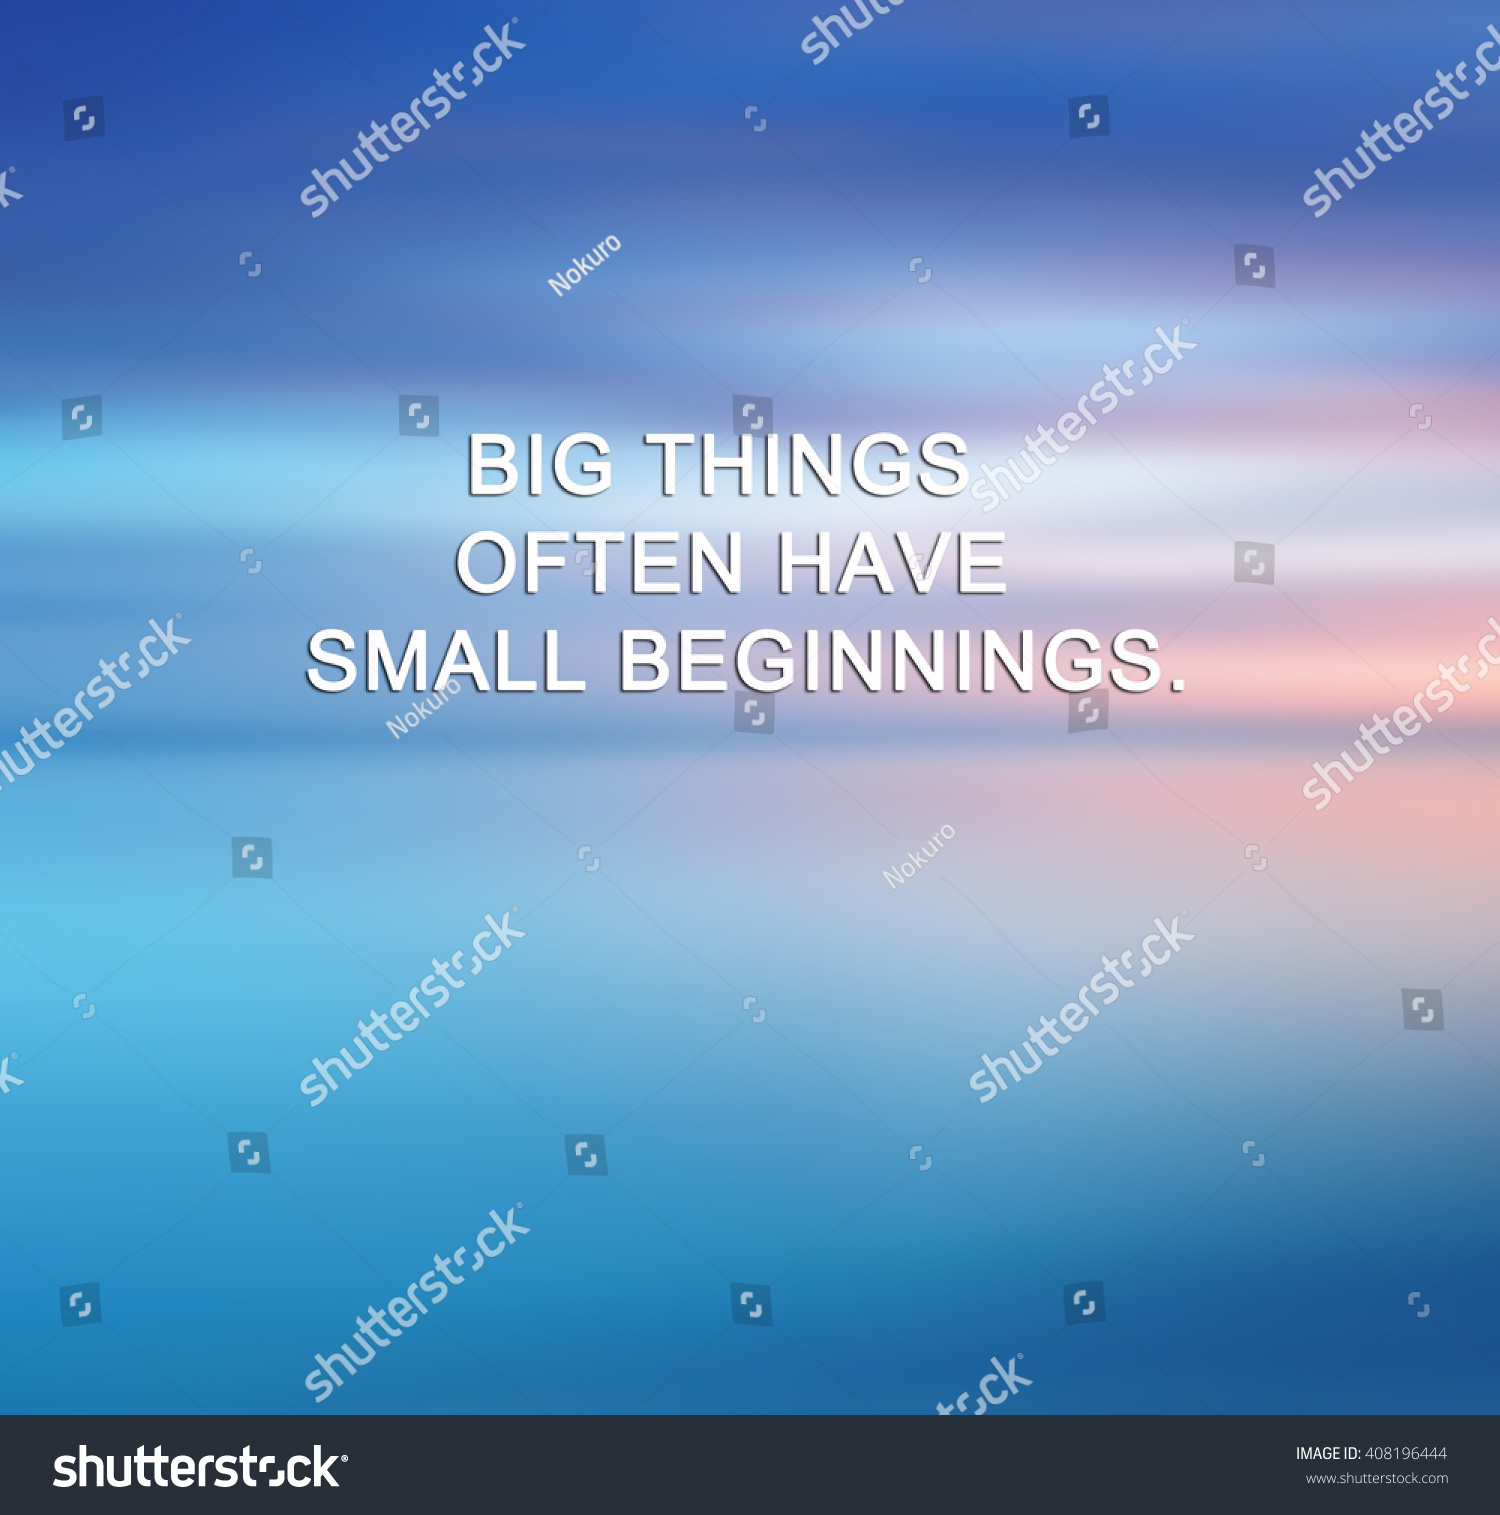 Small Life Quote Inspirational Life Quote Phrase Big Things Stock Photo 408196444